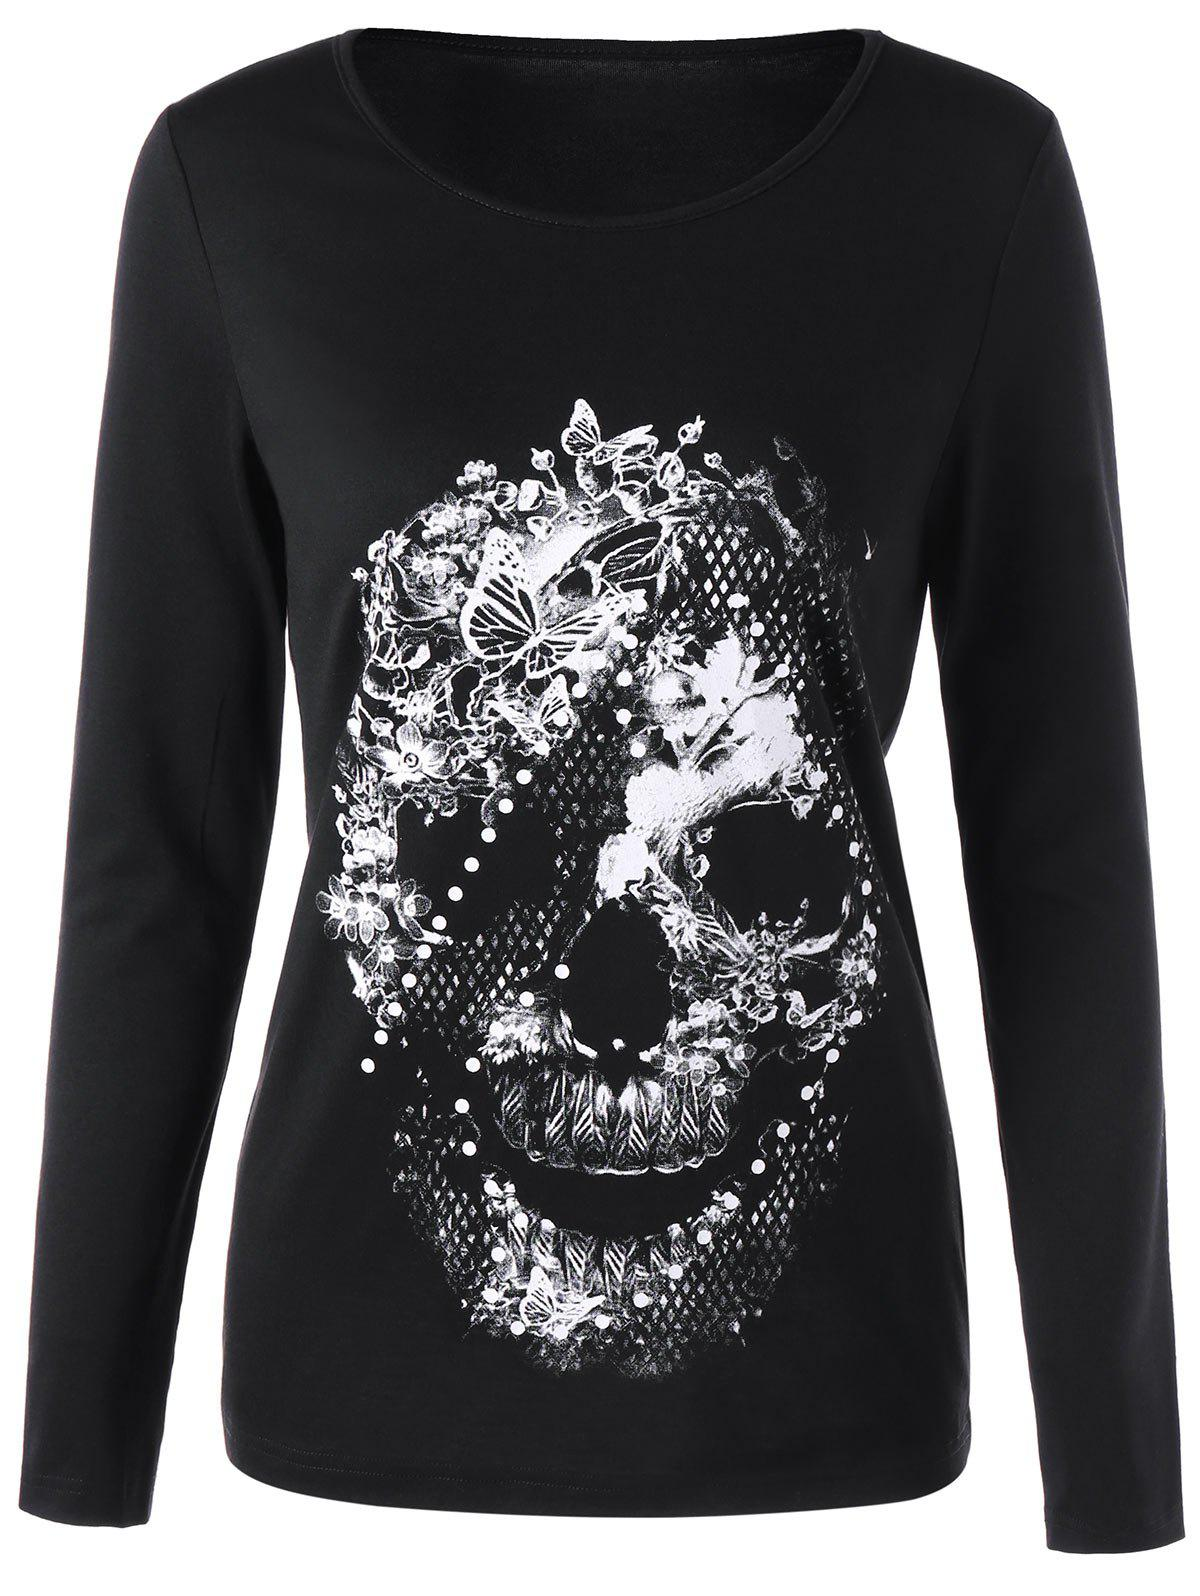 Skull Butterfly Long Sleeve T-shirtWOMEN<br><br>Size: XL; Color: BLACK; Material: Polyester,Spandex; Shirt Length: Regular; Sleeve Length: Full; Collar: Round Neck; Style: Casual; Pattern Type: Butterfly,Floral,Skull; Season: Fall,Spring; Weight: 0.2200kg; Package Contents: 1 x Skull;